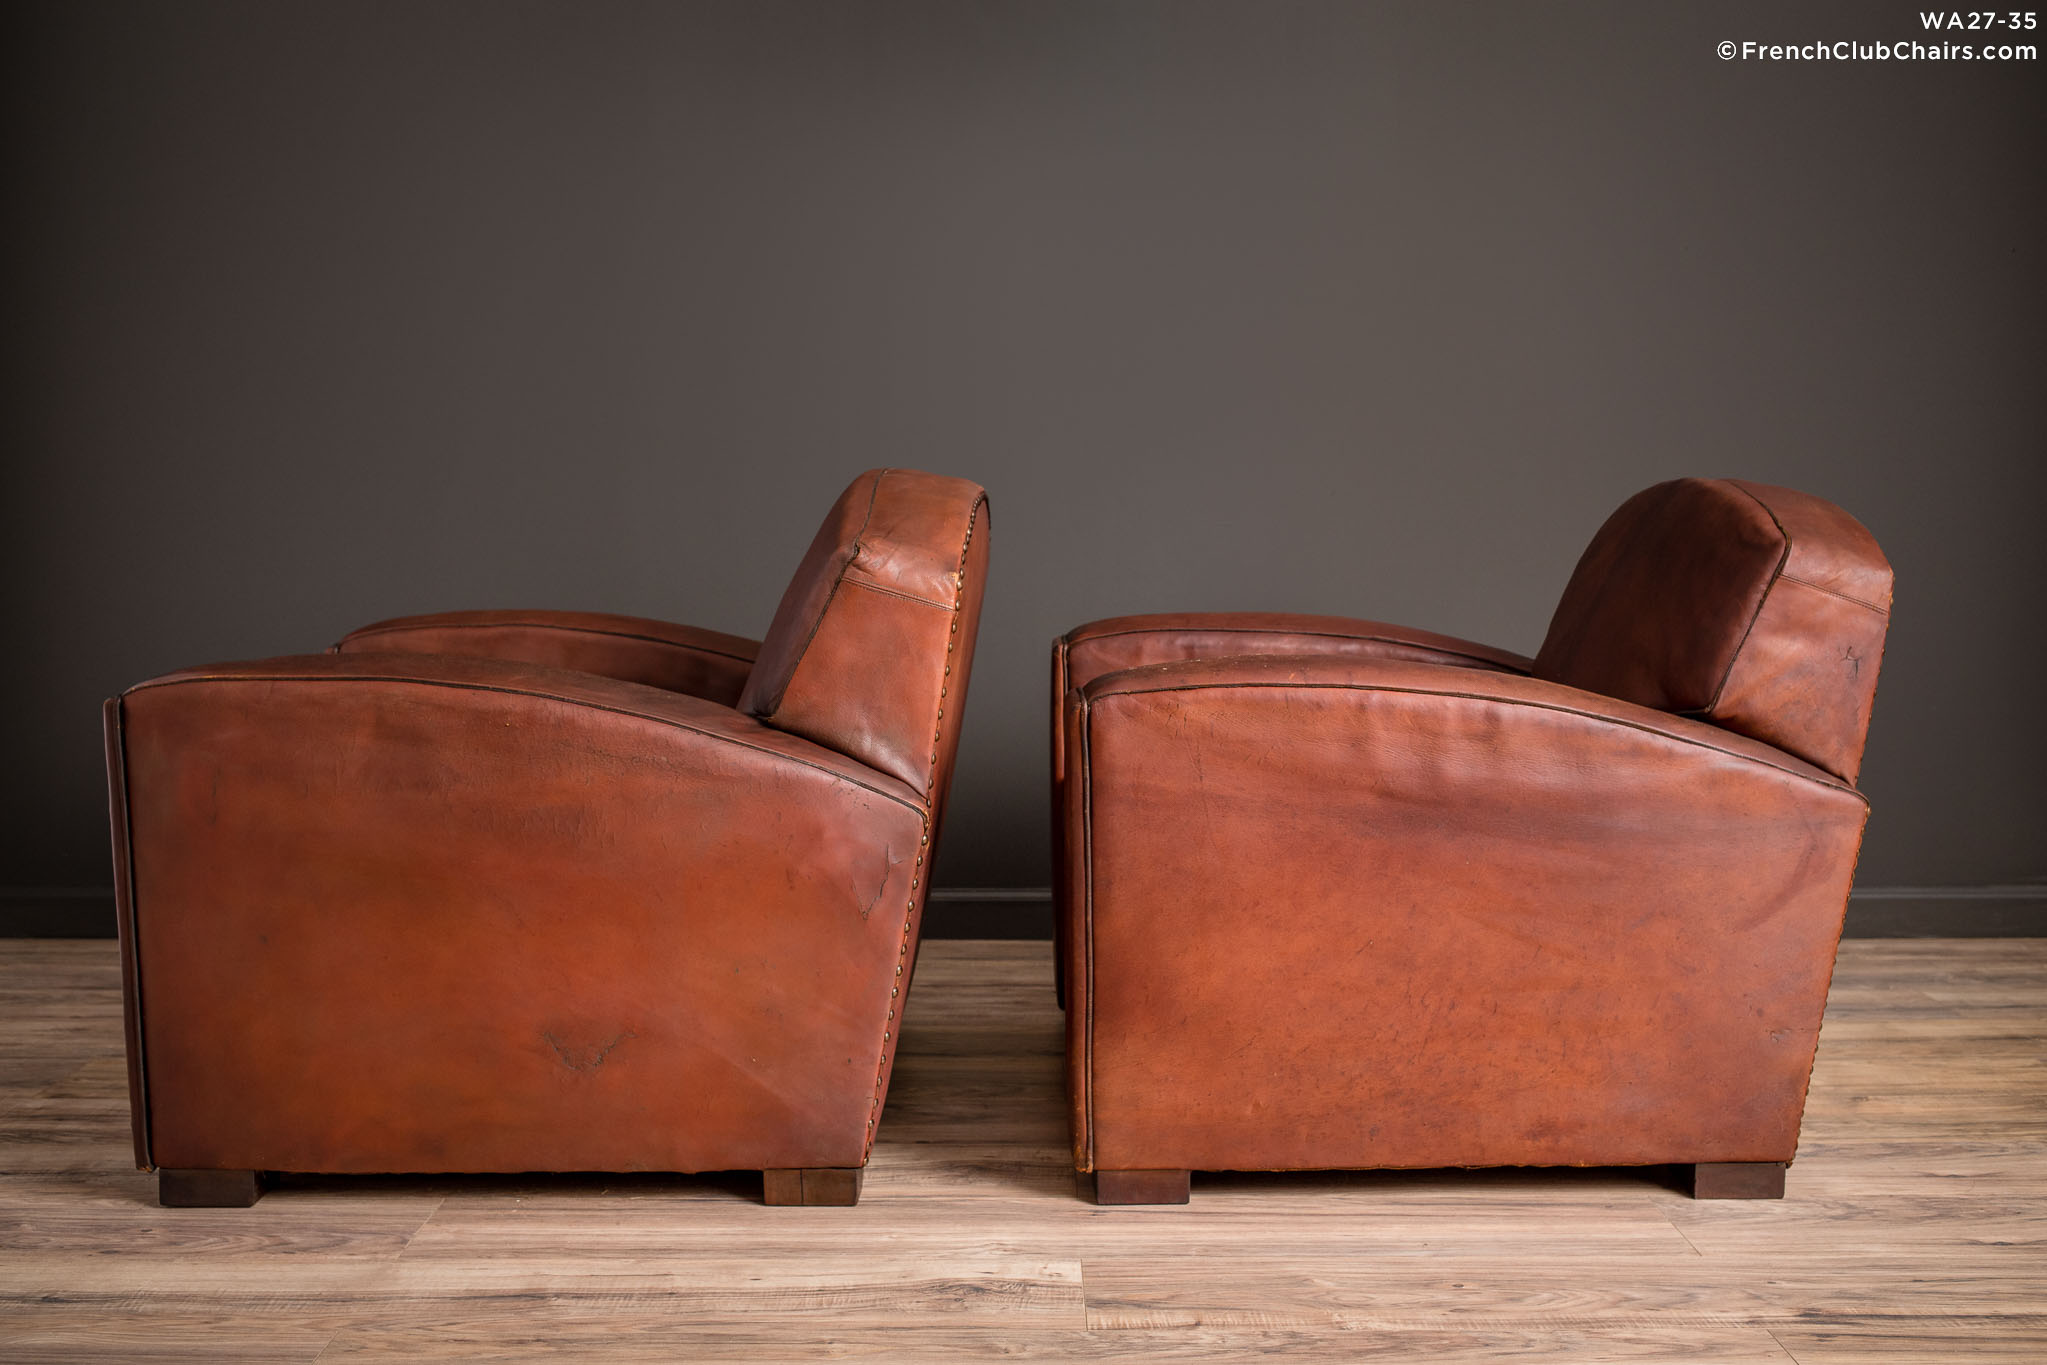 WA_27-35_Cinema_Dark_Lounge_Pair_R_4LT-v01-williams-antiks-leather-french-club-chair-wa_fcccom